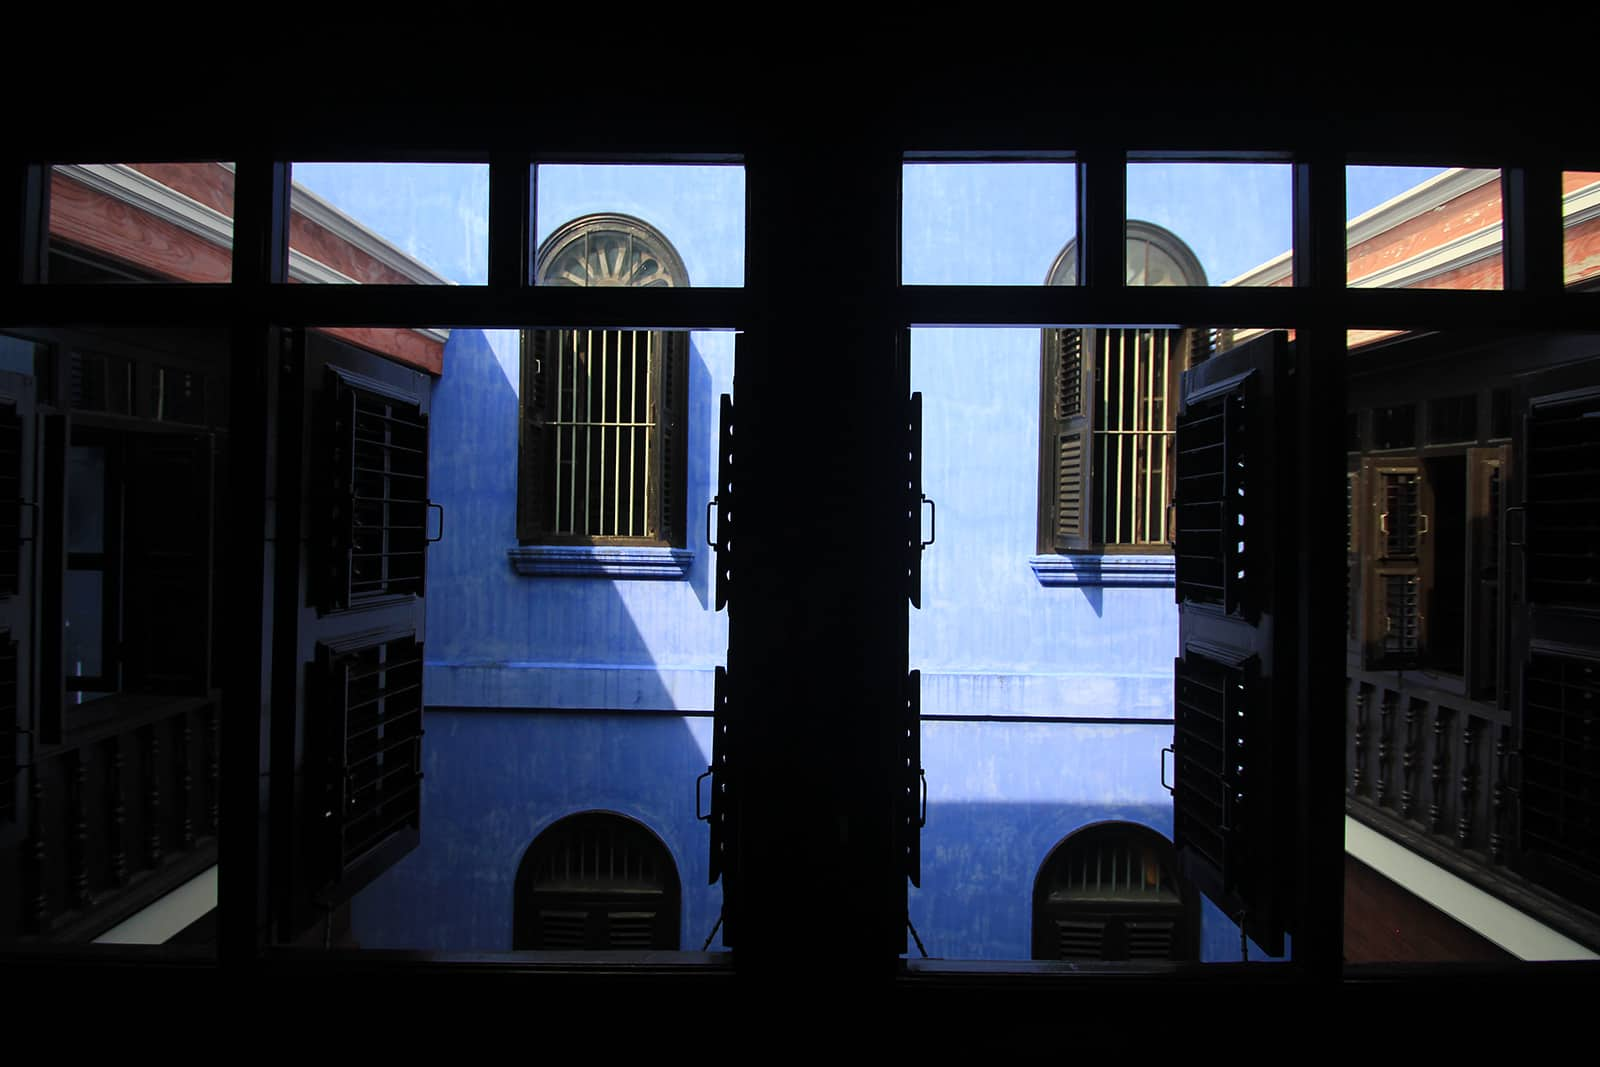 boutique-hotel-penang-island-blue-mansion-architecture-19_k15sbf Courtyard